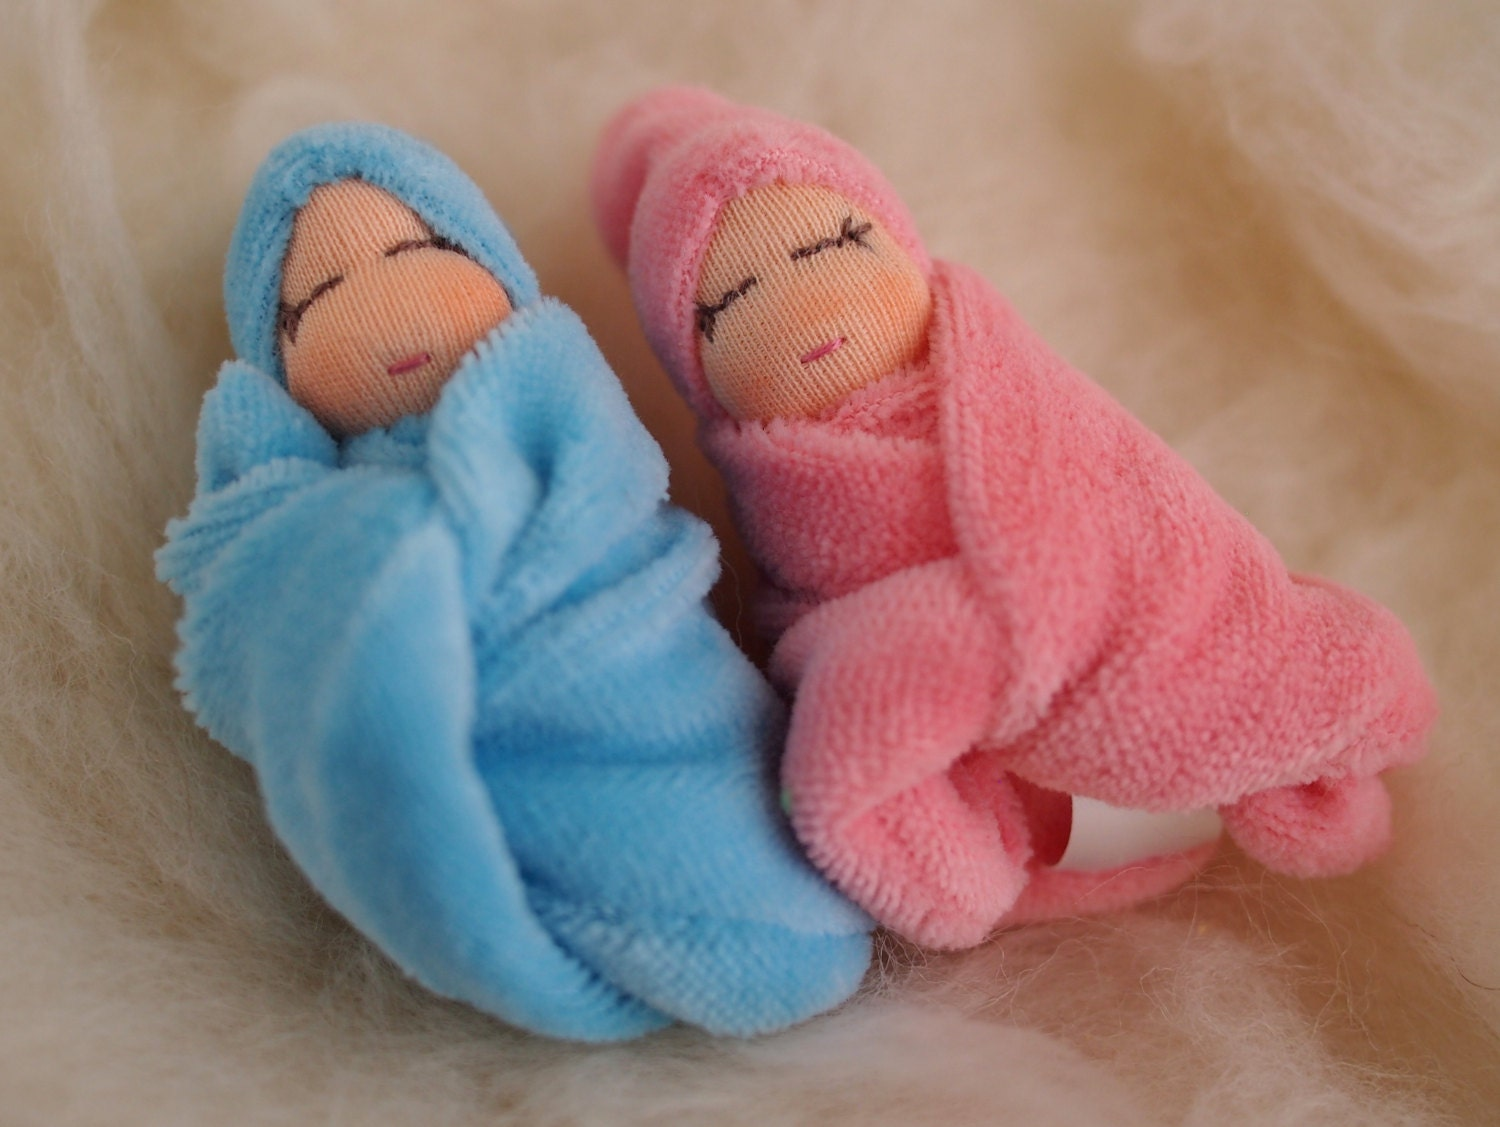 Gift for twins baby shower gift girl and boy doll new baby twins Waldorf baby doll tiny baby doll twin dolls Steiner doll